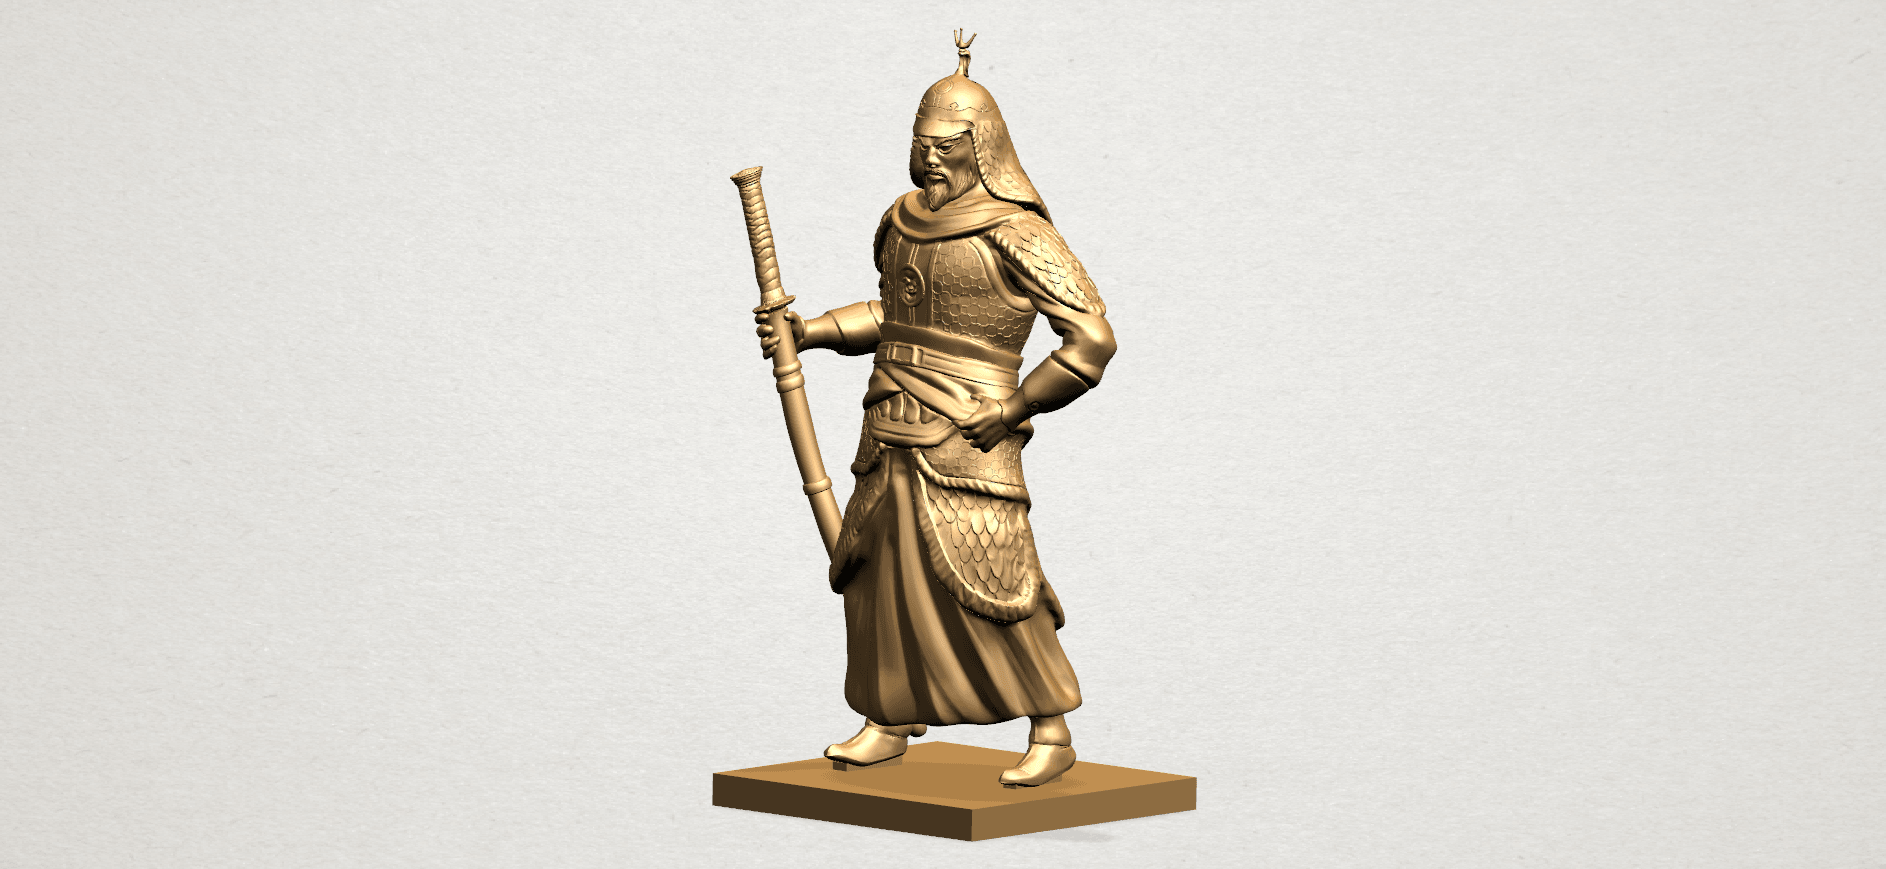 Age of Empire - warrior -B02.png Download free STL file Age of Empire - warrio • 3D print design, GeorgesNikkei